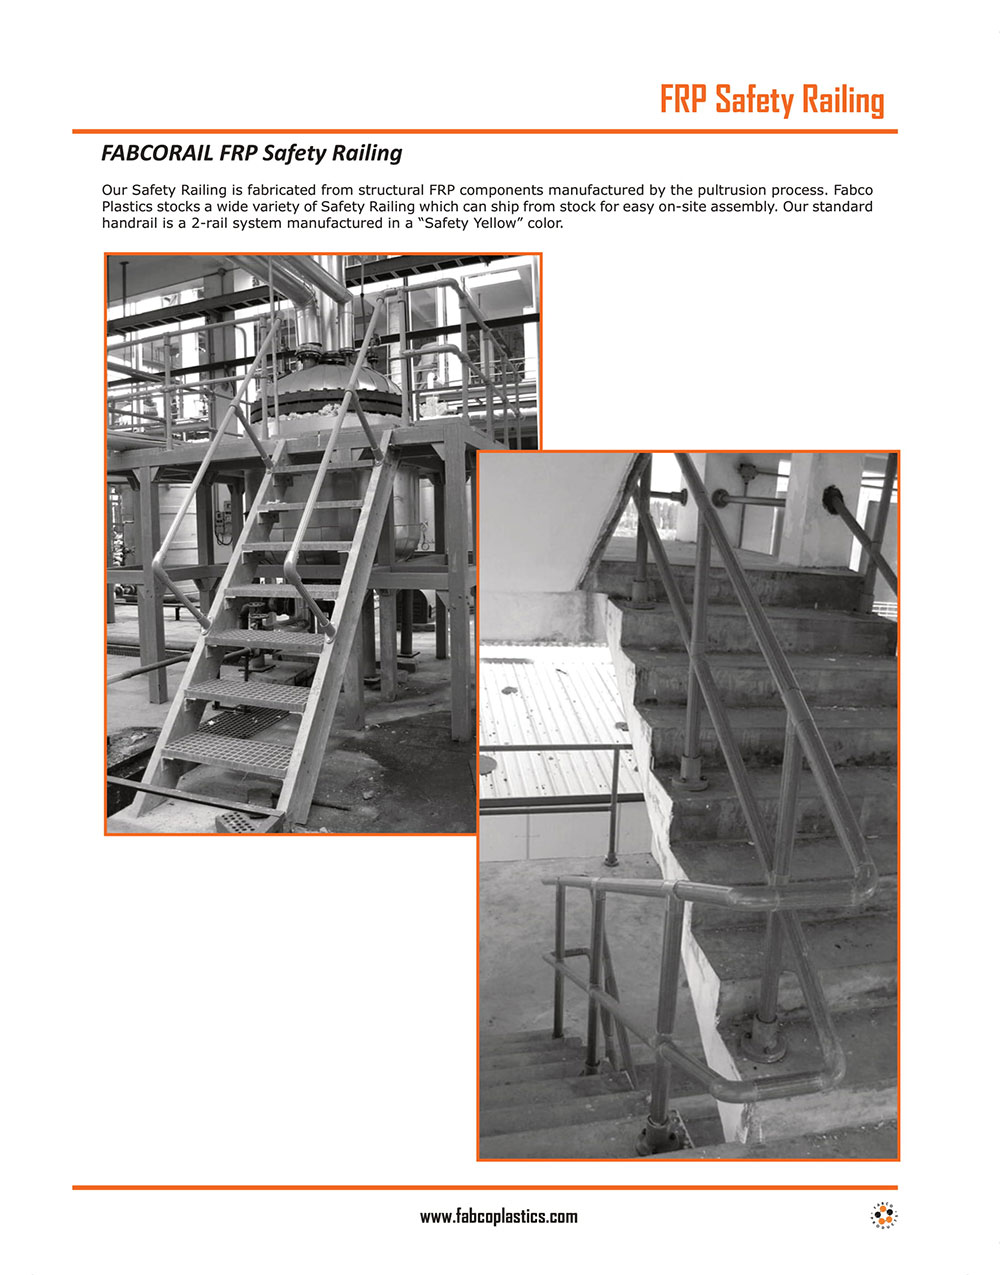 FRP Safety Railing